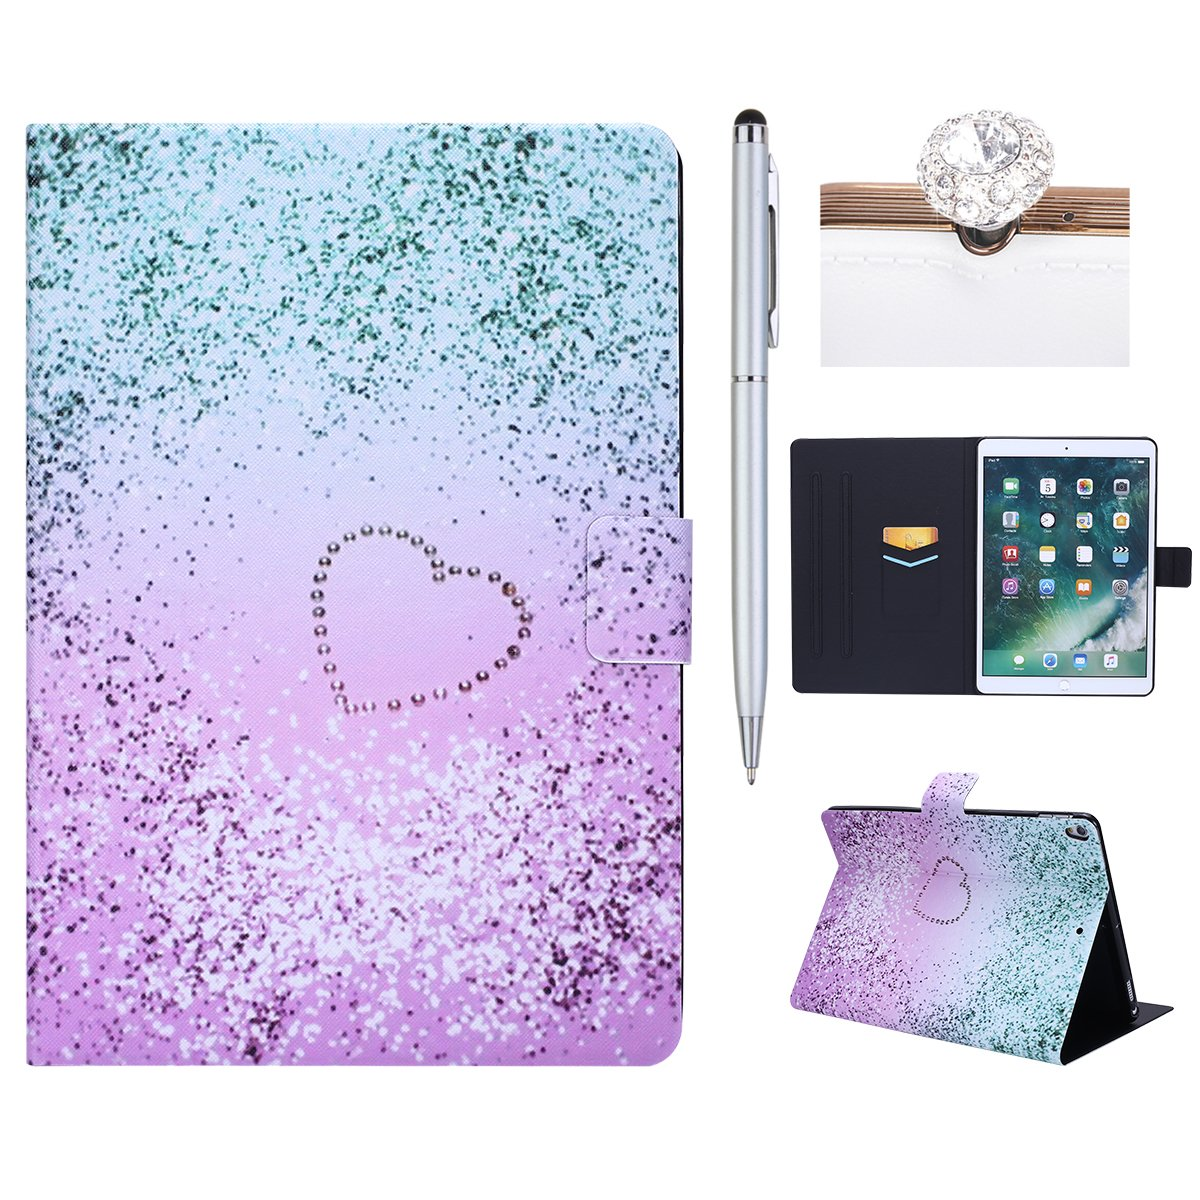 iPad Pro 10.5 Case, iPad Pro 10.5 Cover, iPad Pro 10.5 inch Case, Felfy Leather Case for iPad Pro 10.5, iPad Pro 10.5 Case Leather, Premium Leather Ultra Thin Colorful Paniting Cover Wallet Flip Case with Built-in Stand and Front/Back Protection Magnetic A